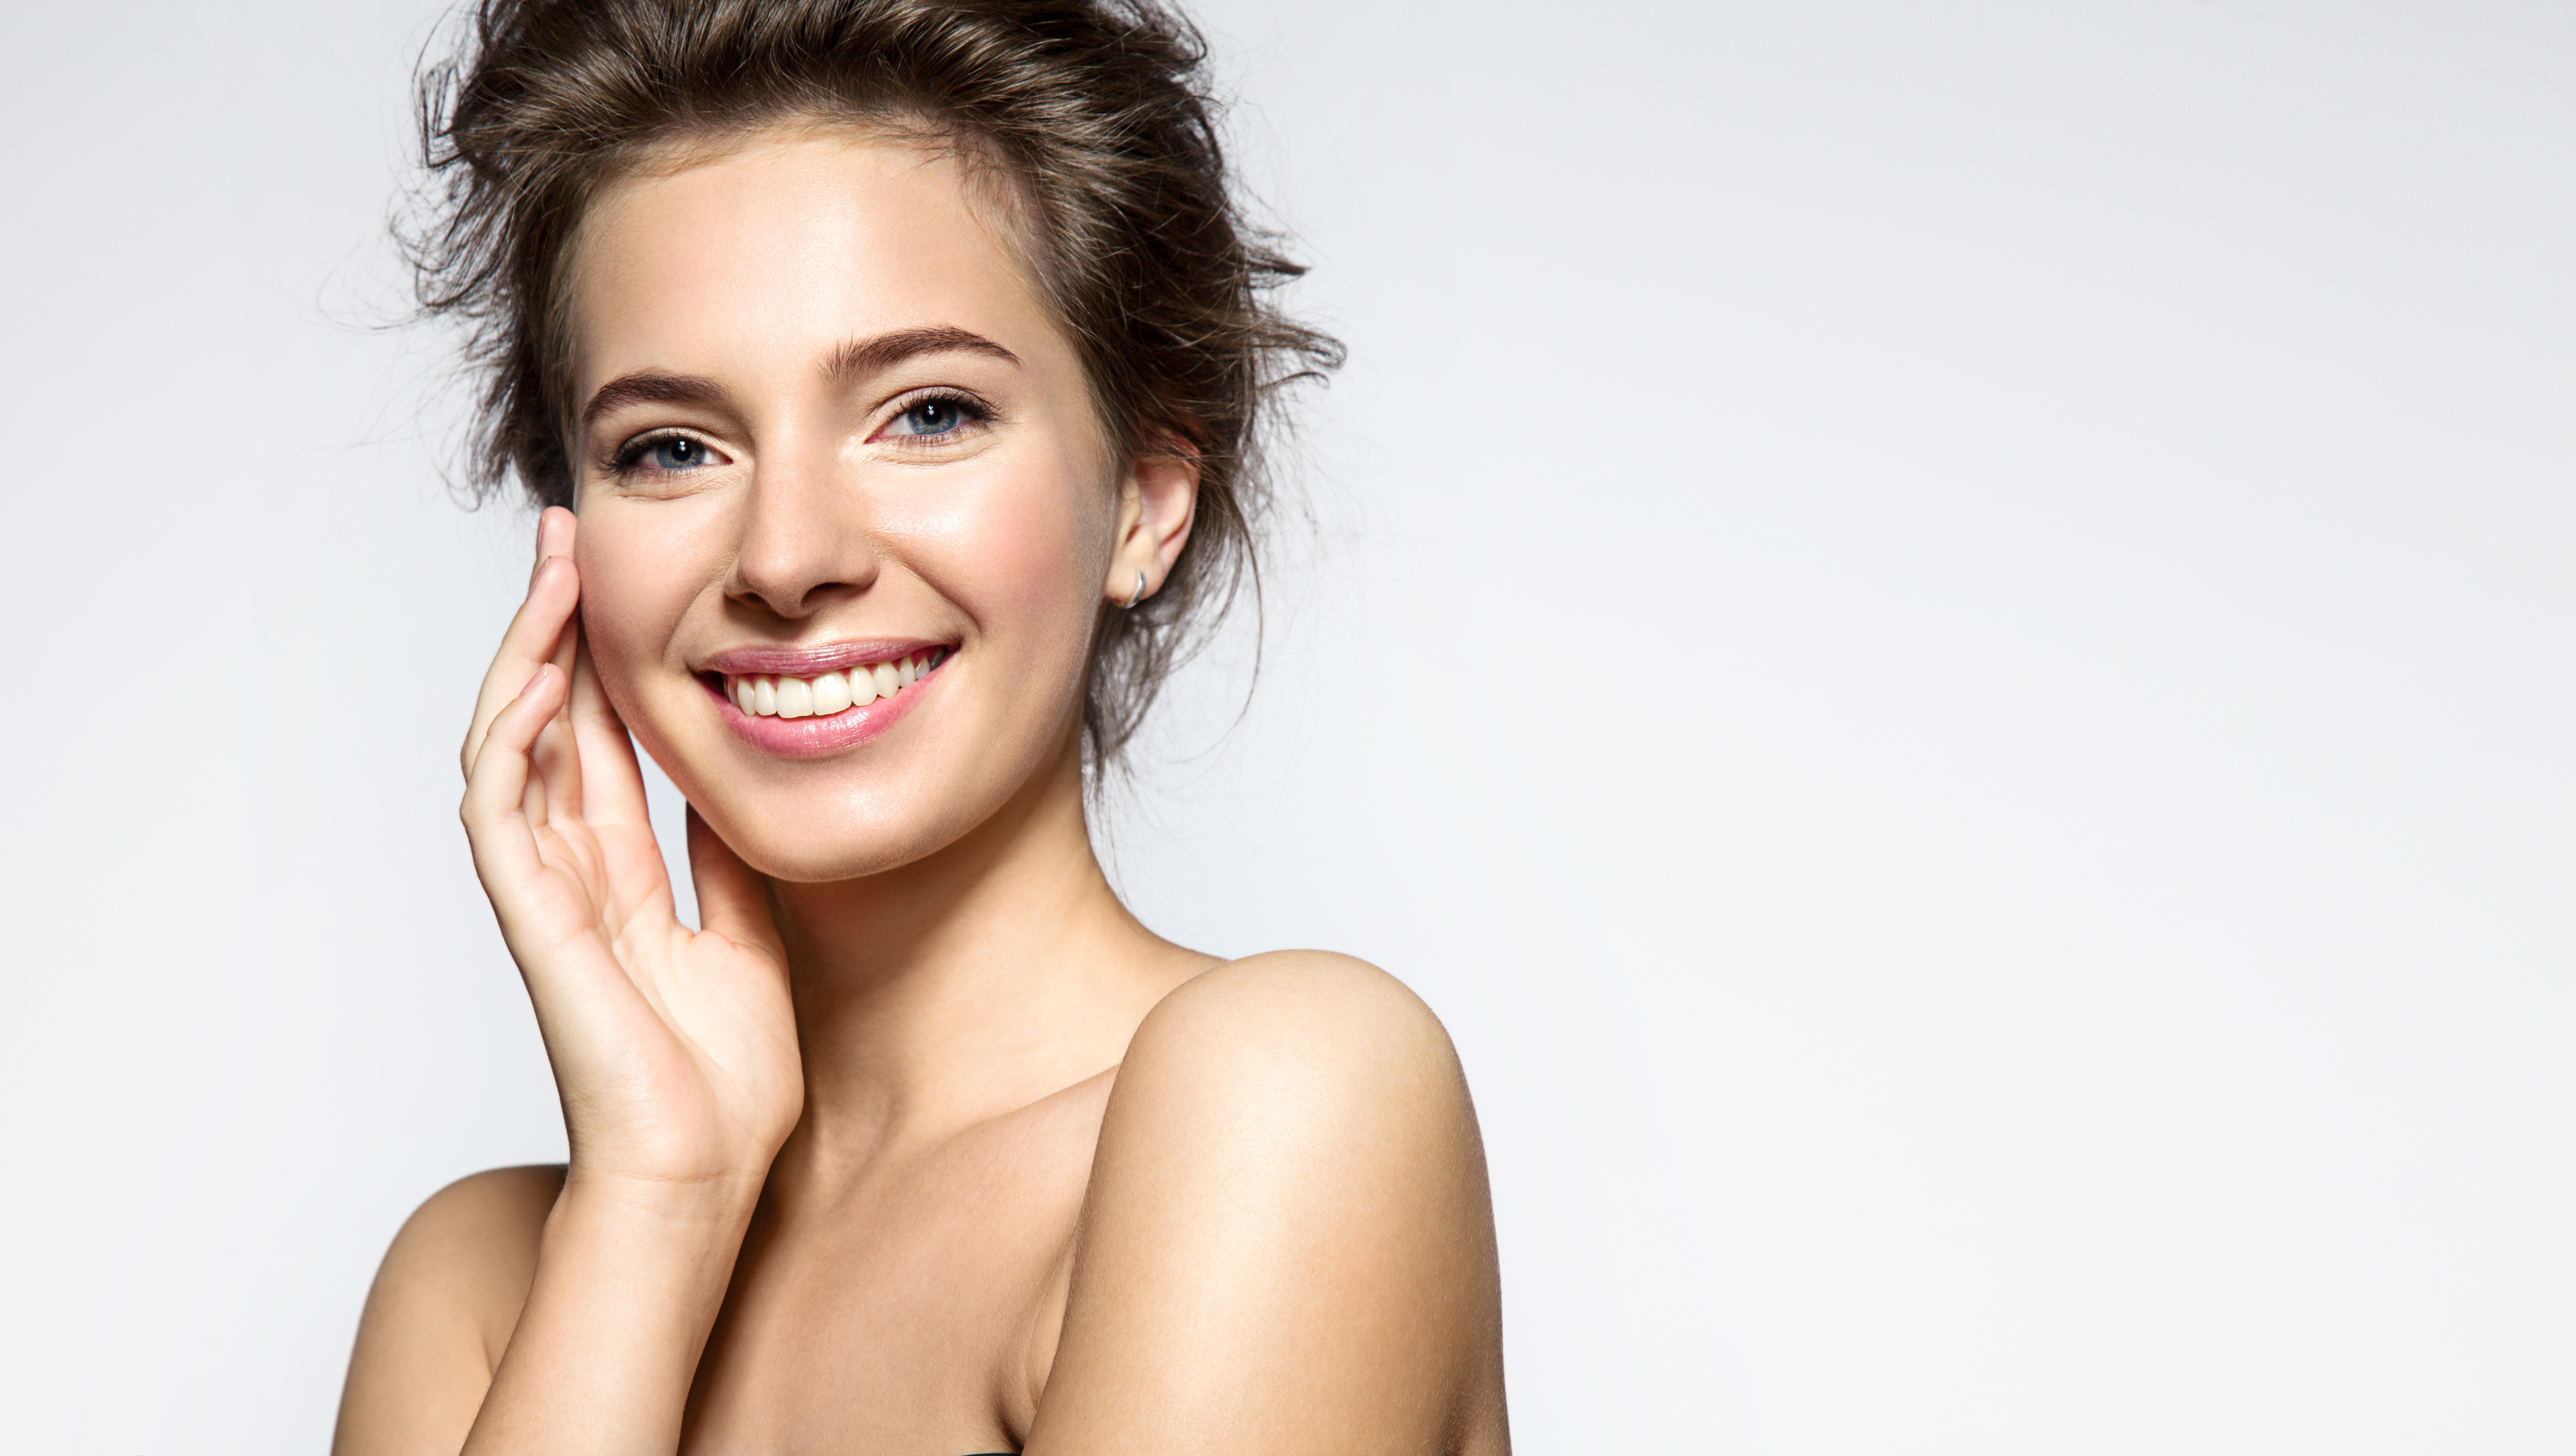 Skincare That's Tailored For You